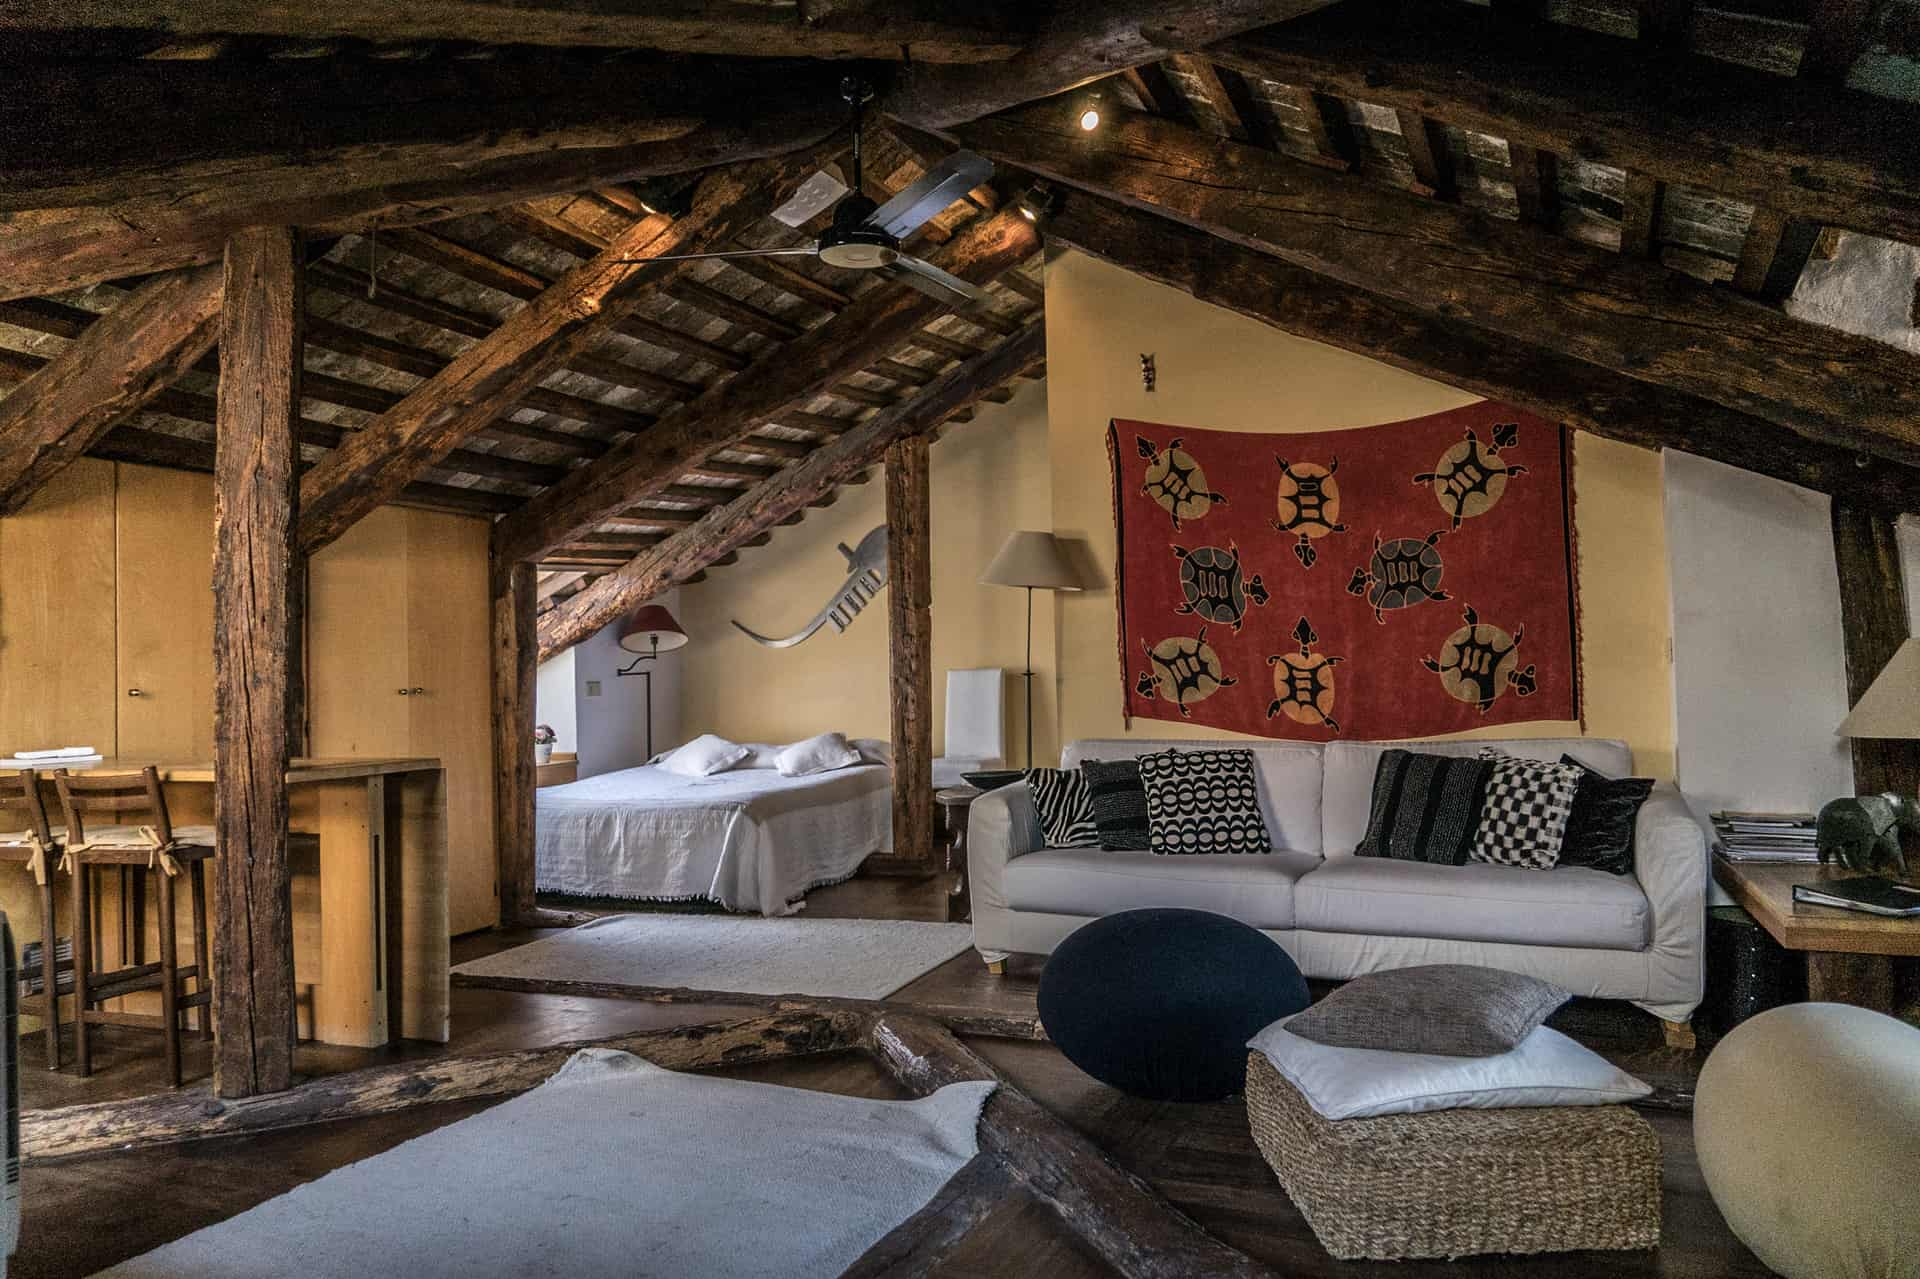 Comfortable double bed and living room in a single large open space with wooden beams - Altana Studio Apartment